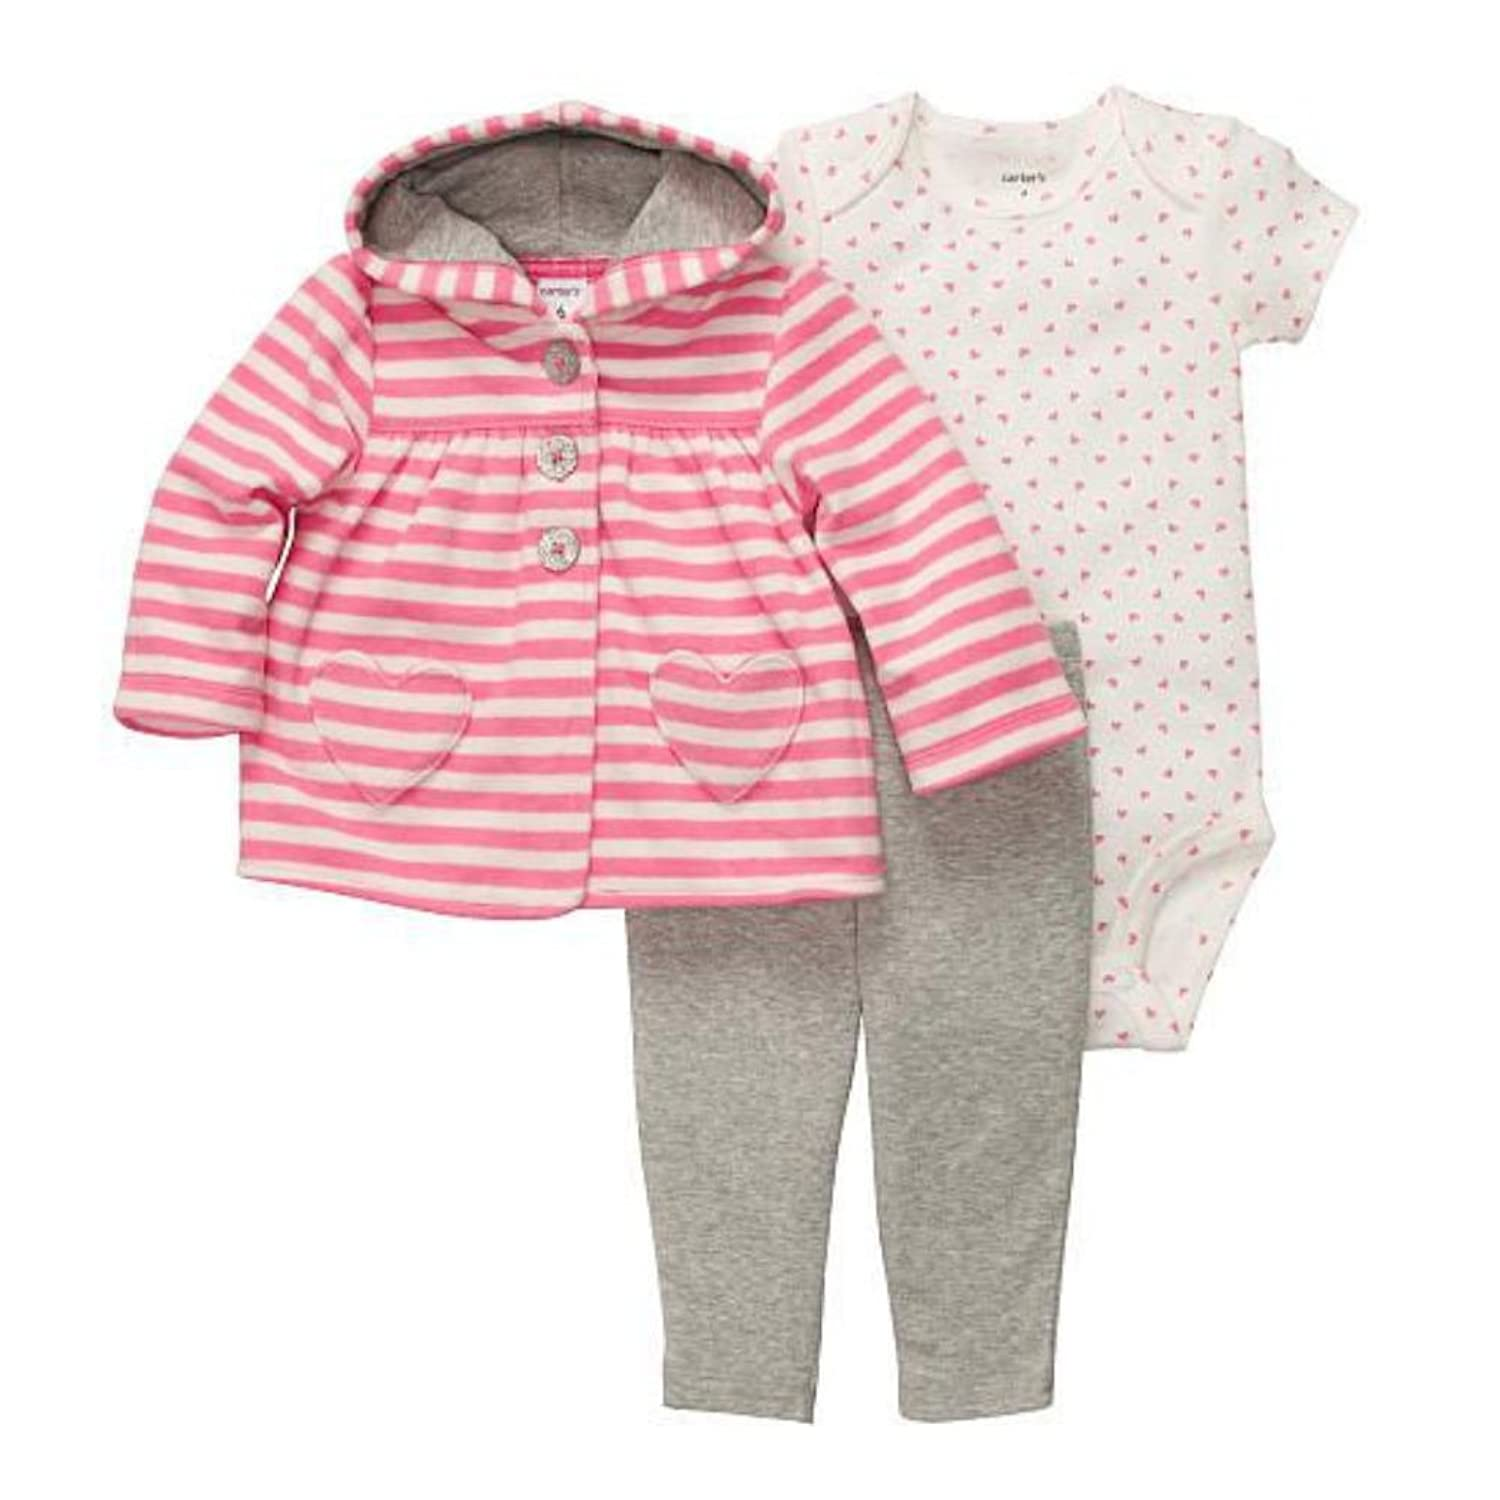 Carters Infant Girls 3 Piece Set Plush Pink Heart Hoodie Leggings & Shirt